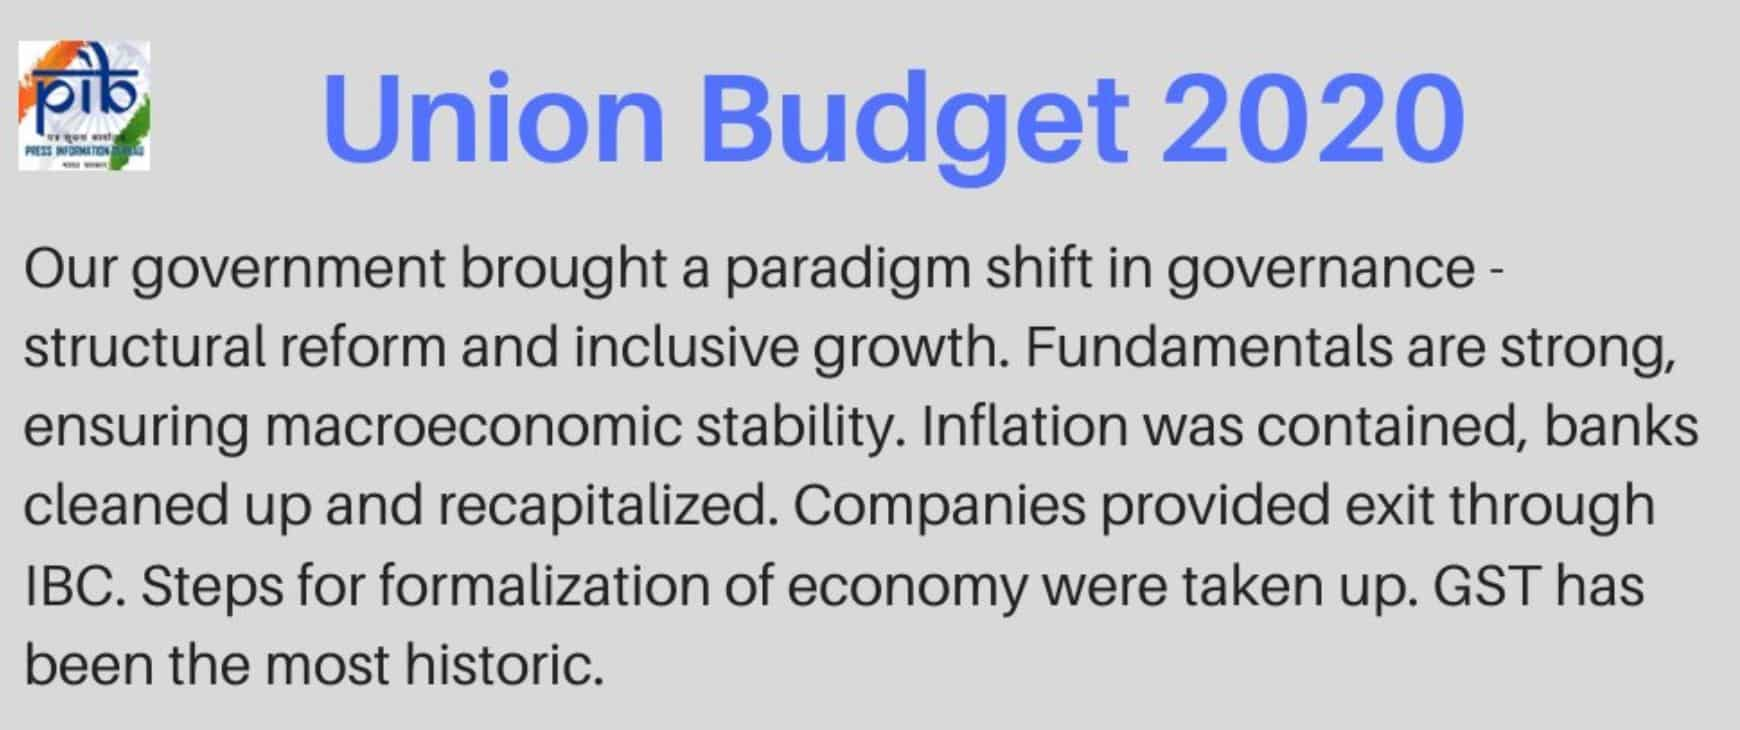 From the Budget Speech of Finance Minister Nirmala Sitharaman